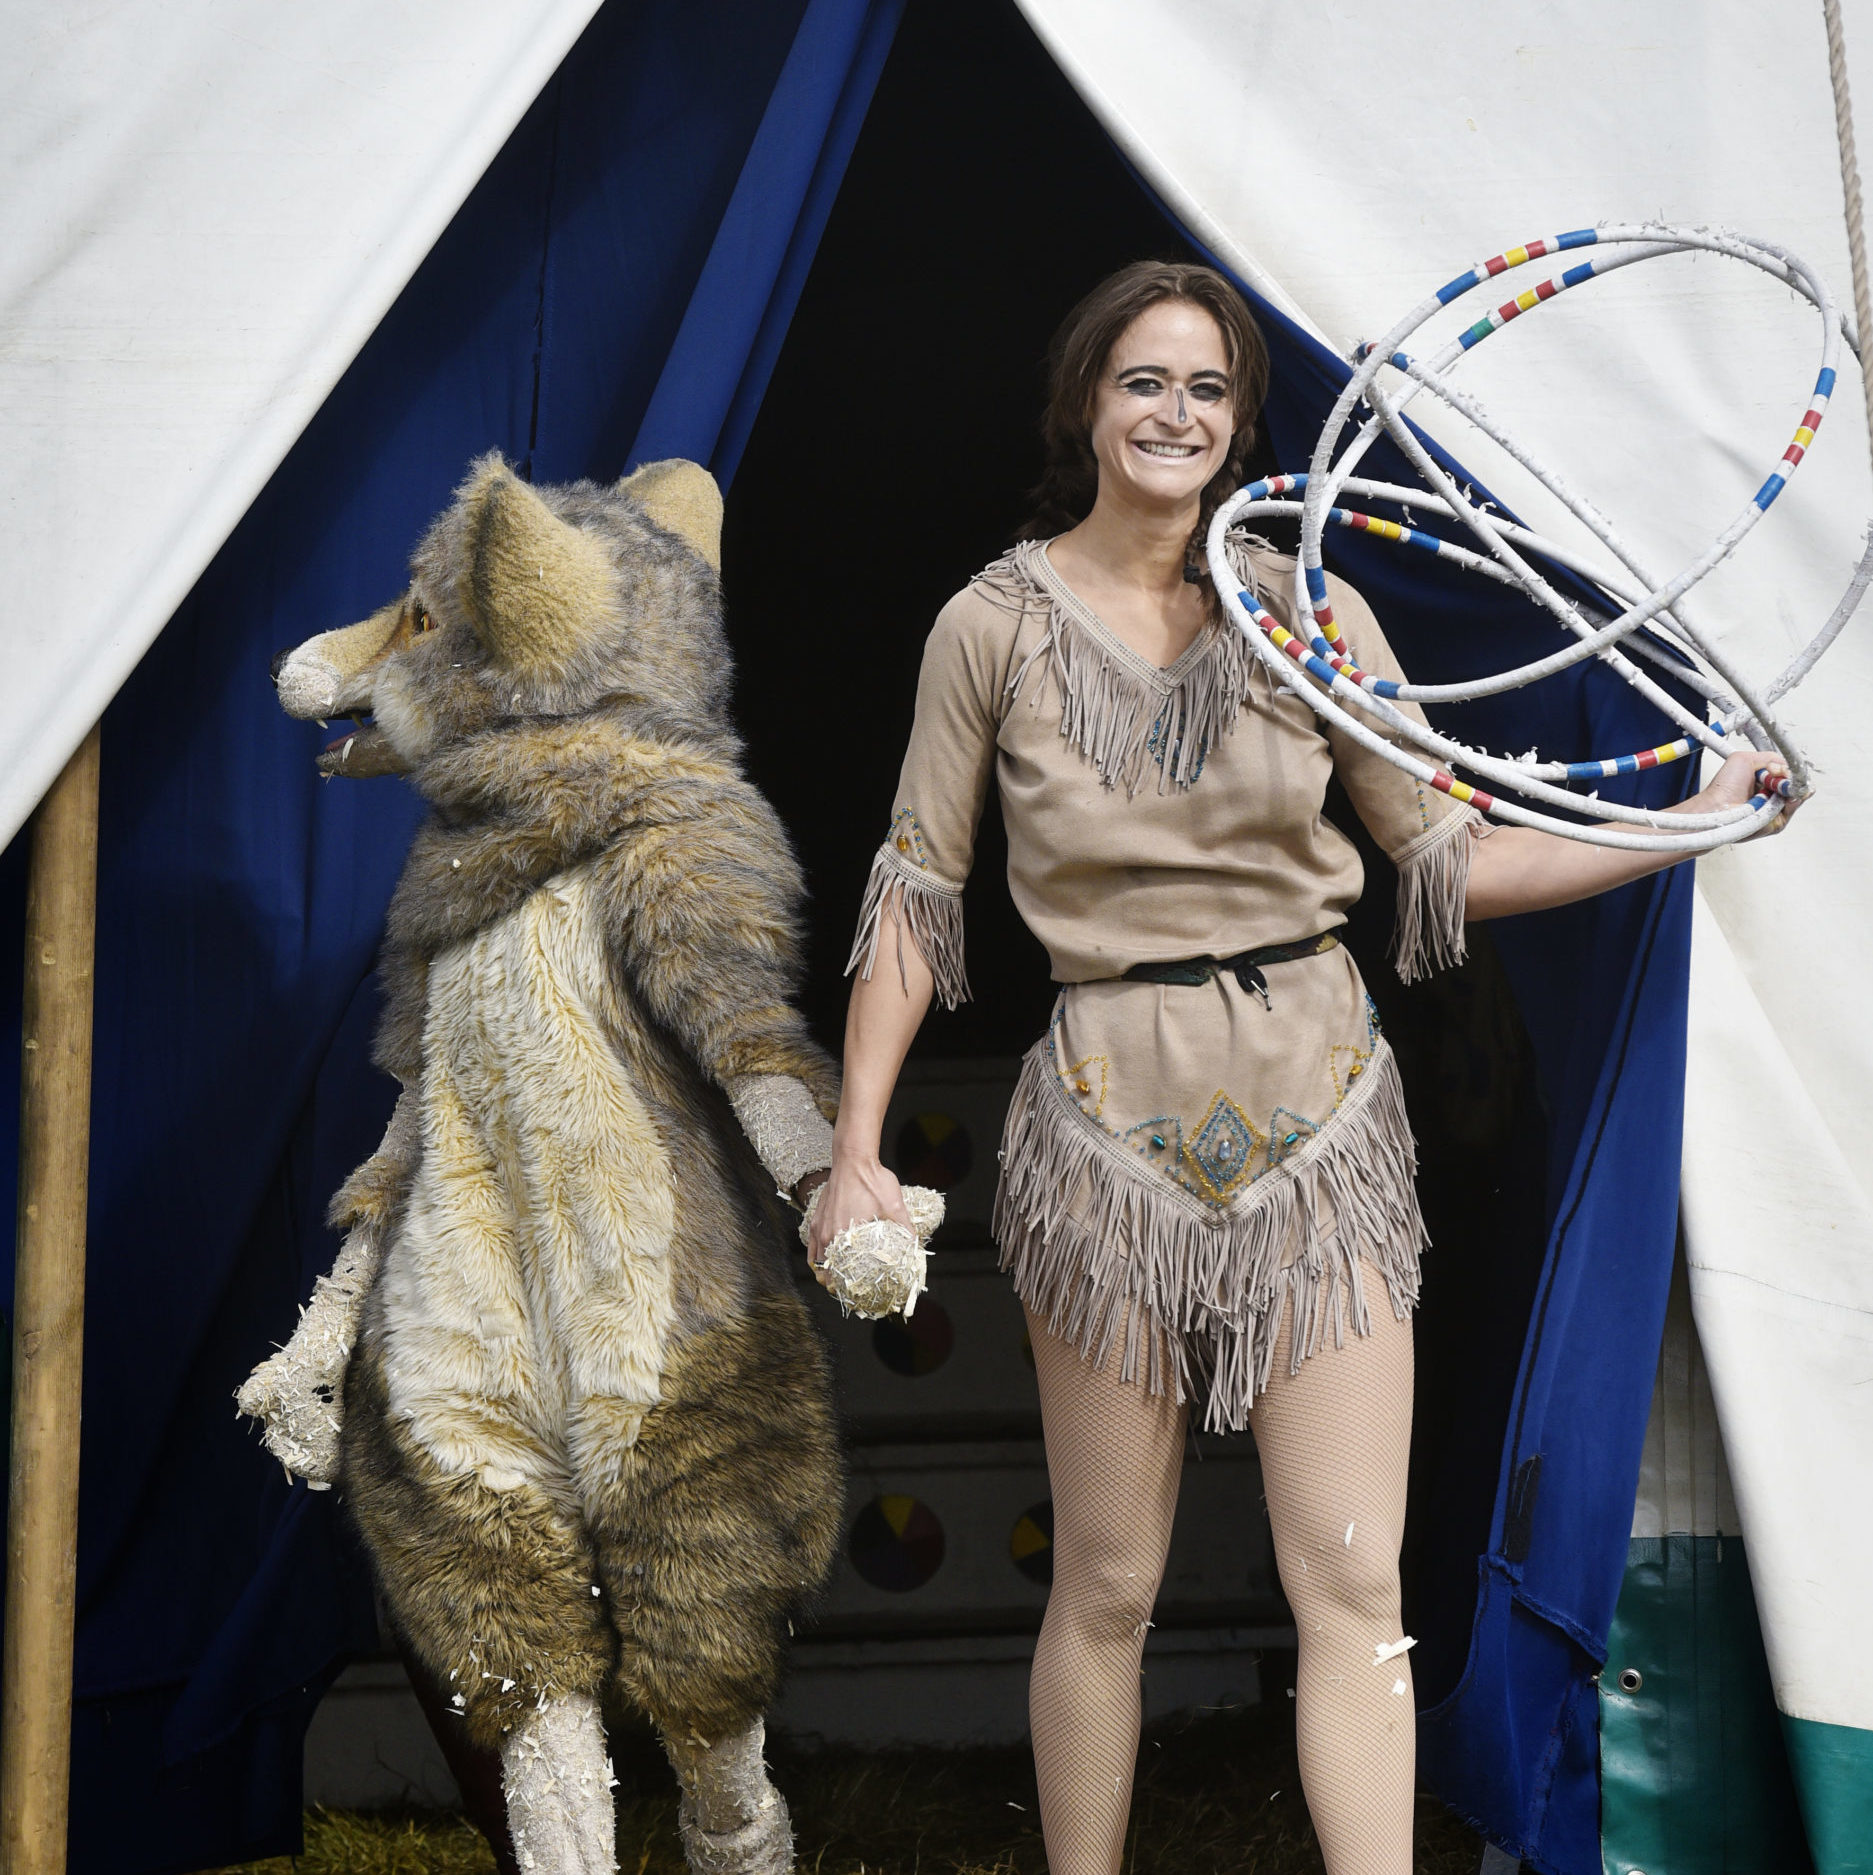 Nancy and the wolf from 2016 The Painted Wagon taken by Andrew Rees